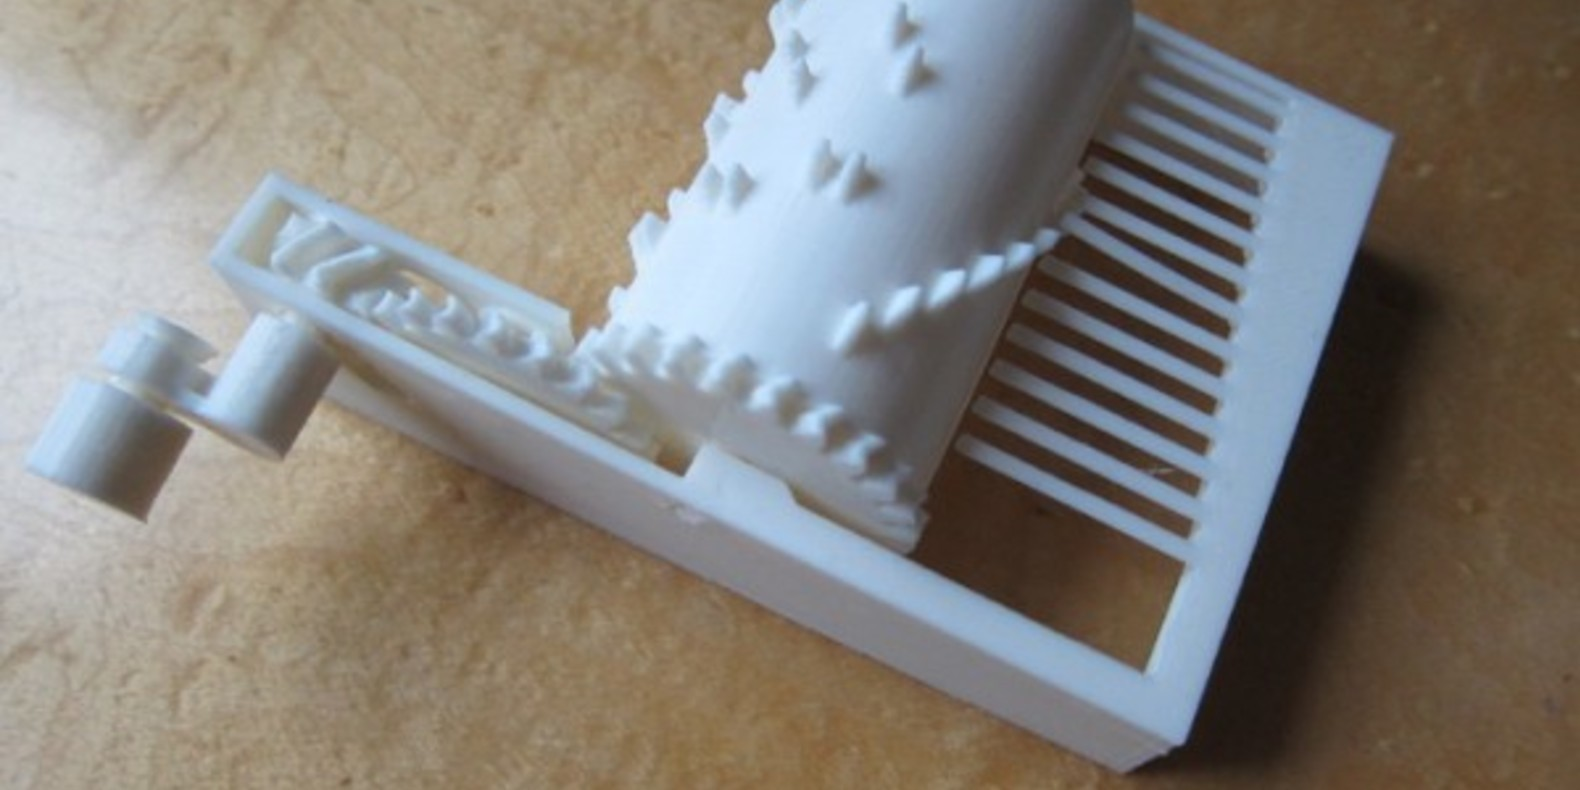 A music box to be printed in 3D